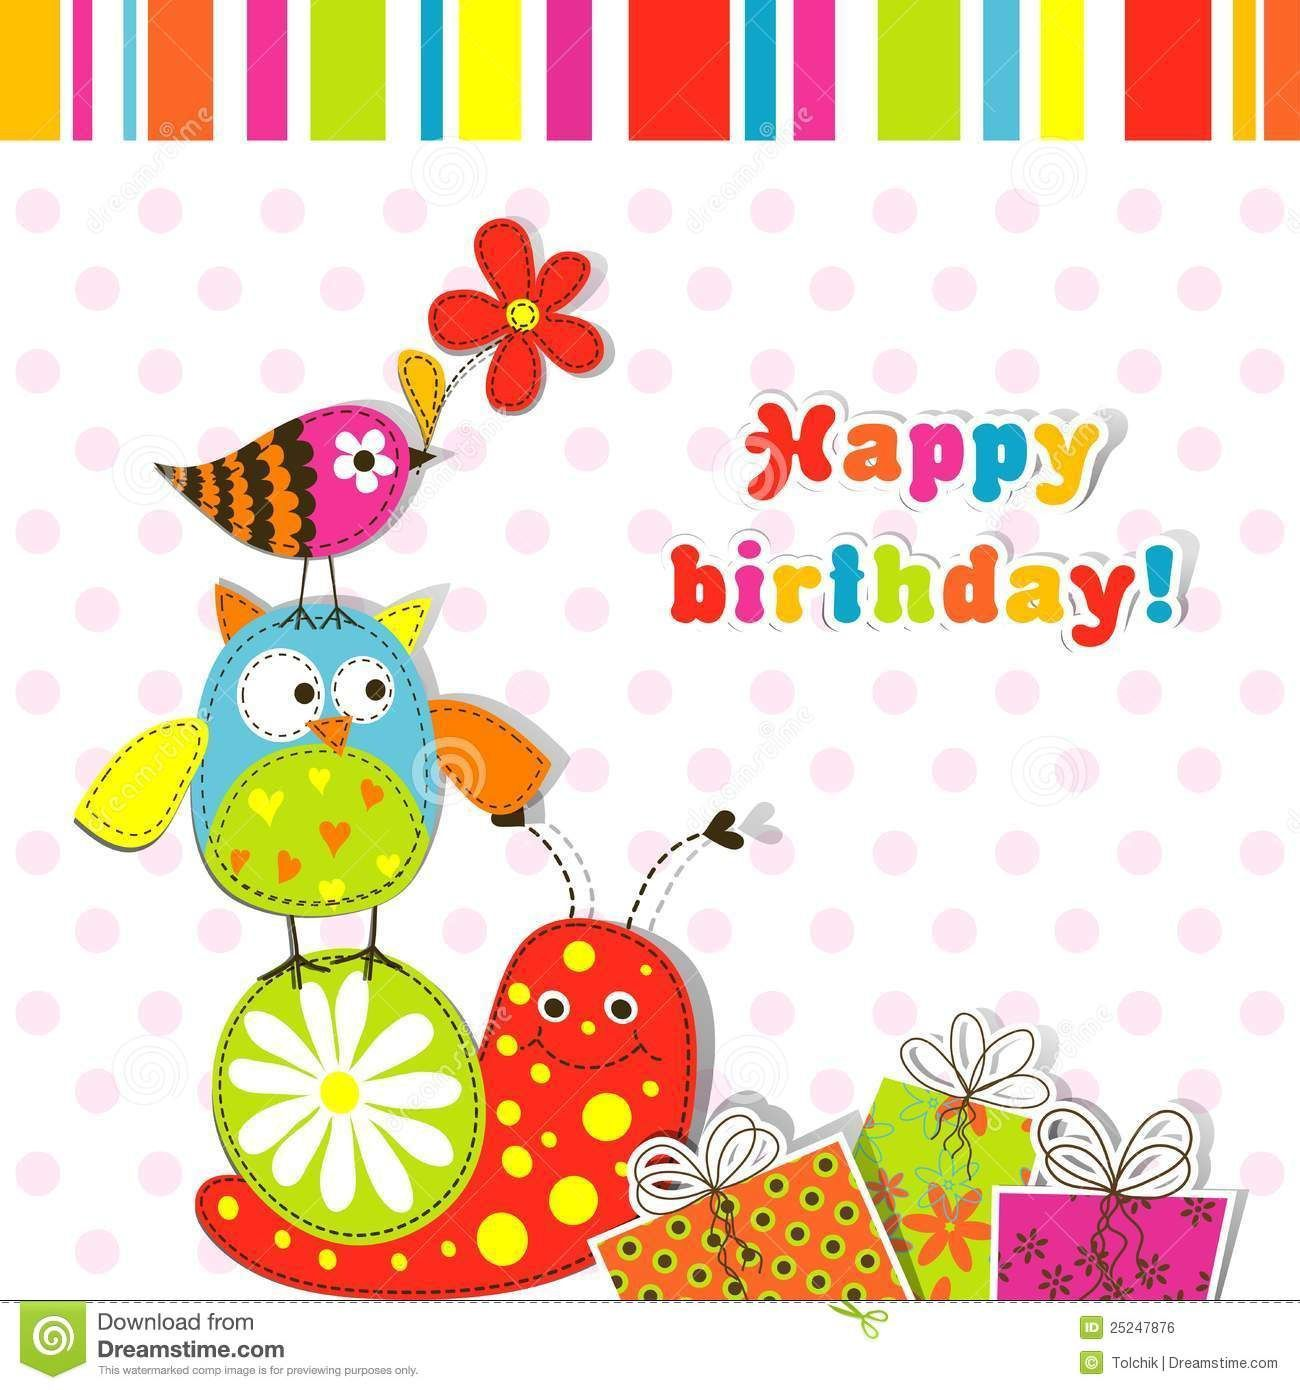 008 Surprising Birthday Card Template Free Image  Invitation Photoshop Download WordFull